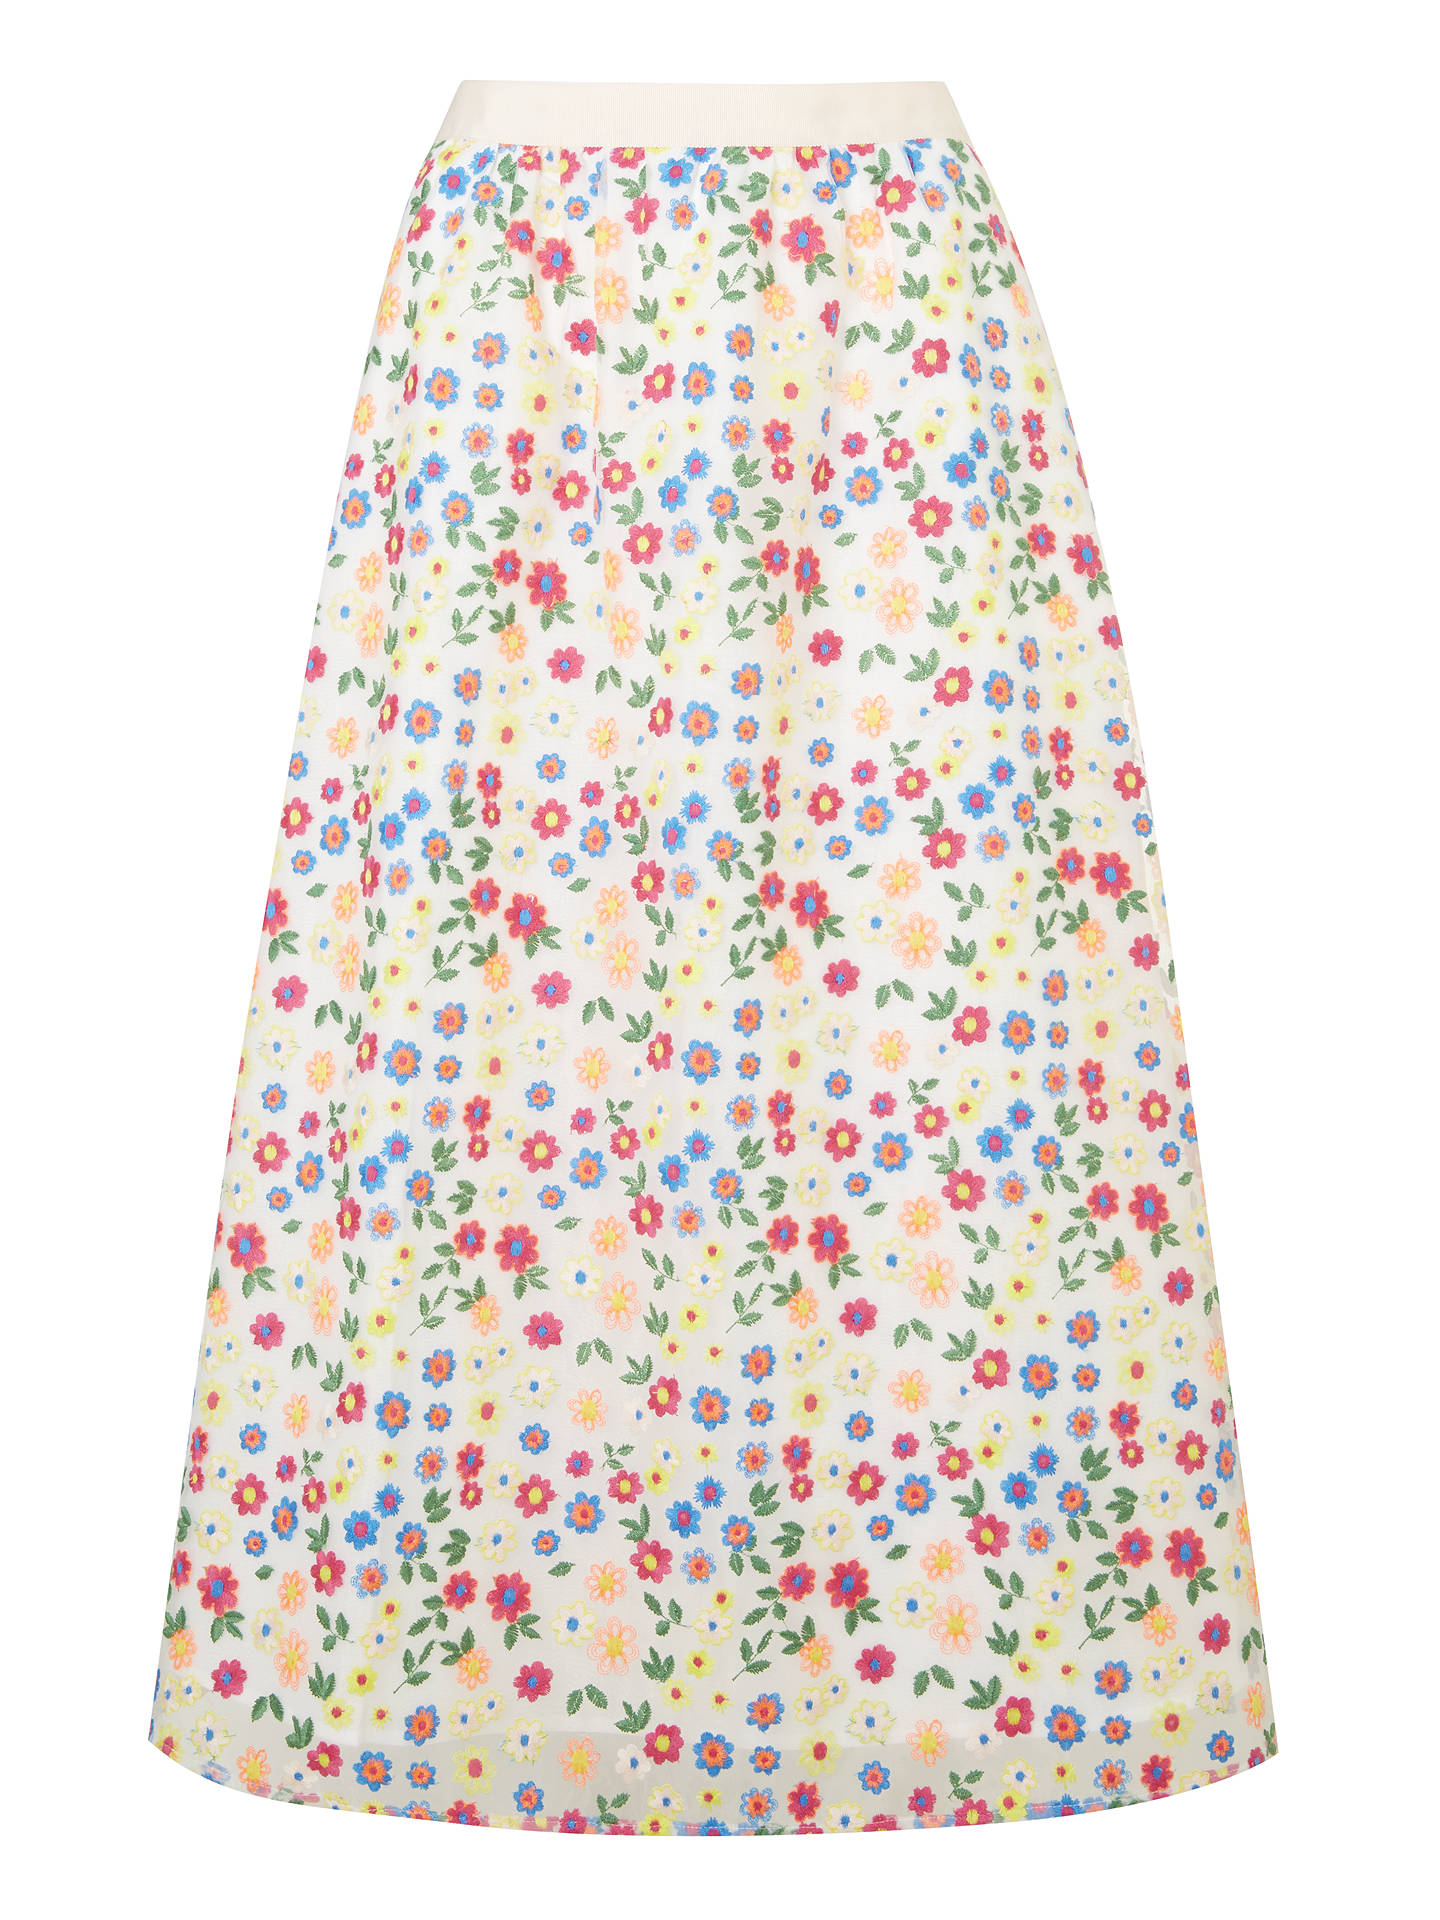 Buy Boden Marjorie Organza Floral Print Skirt, Red Pop, 8 Online at johnlewis.com